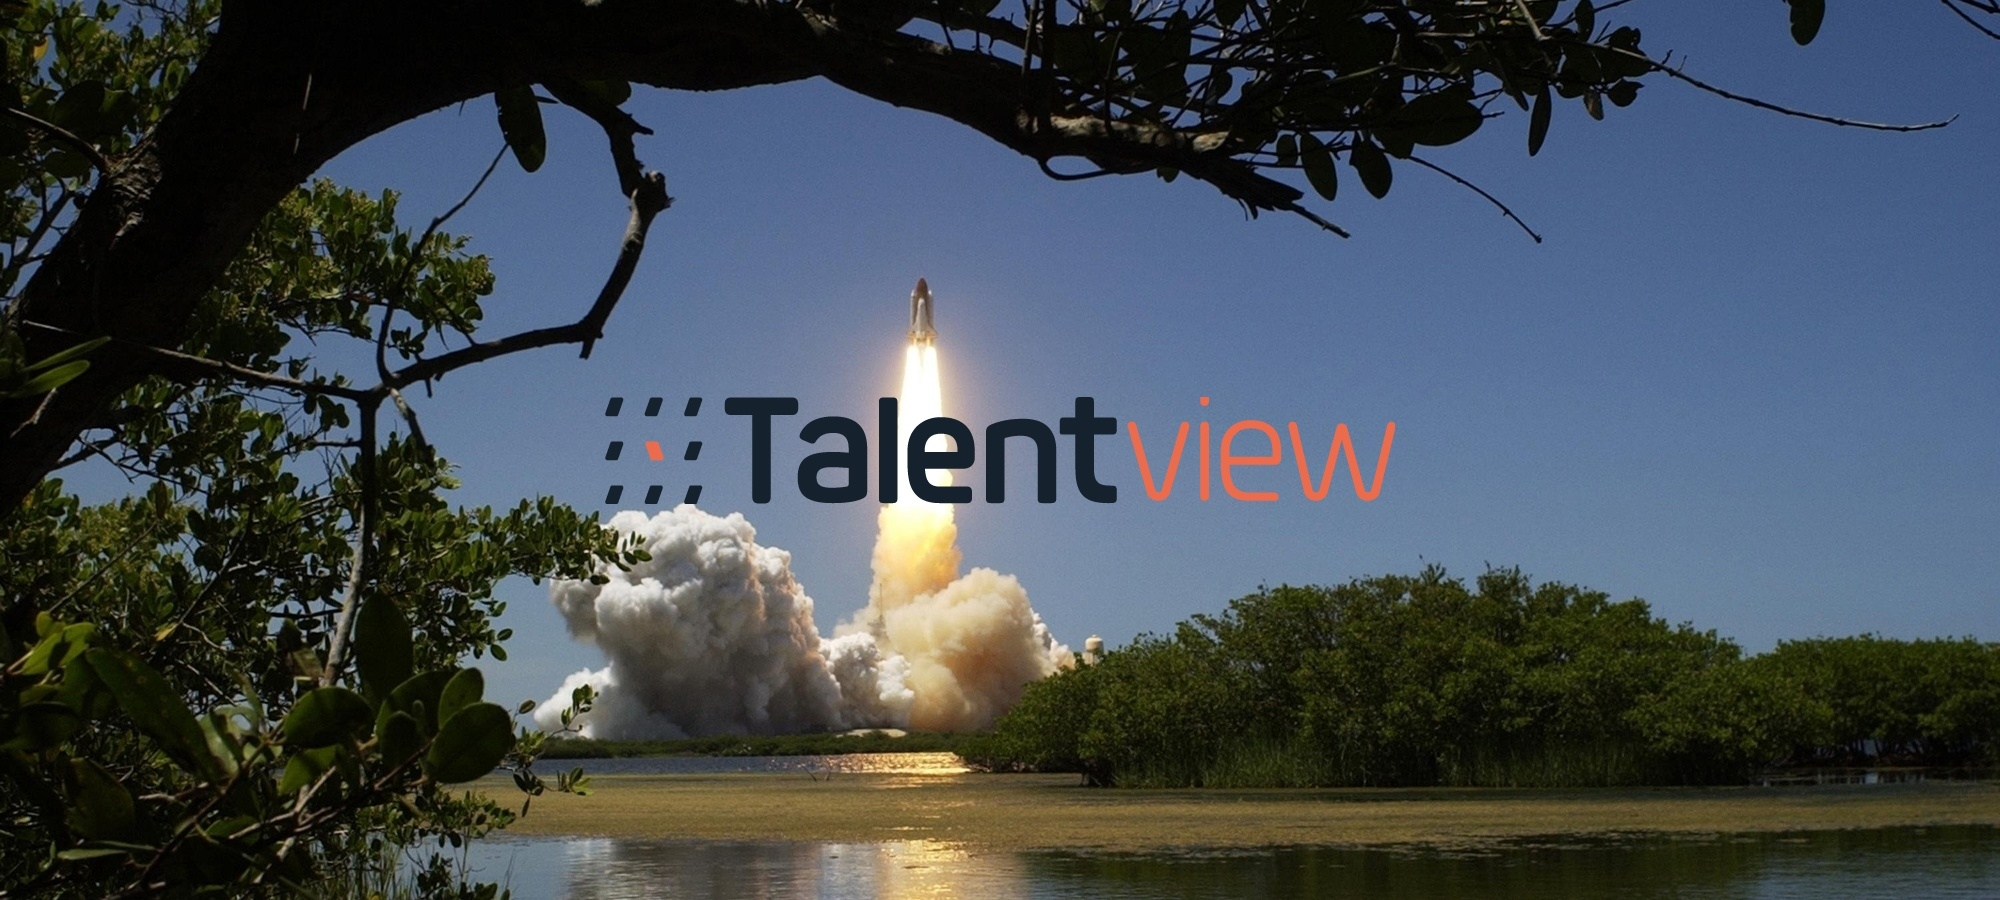 Astronaute talentview - Fusee d enfer ...